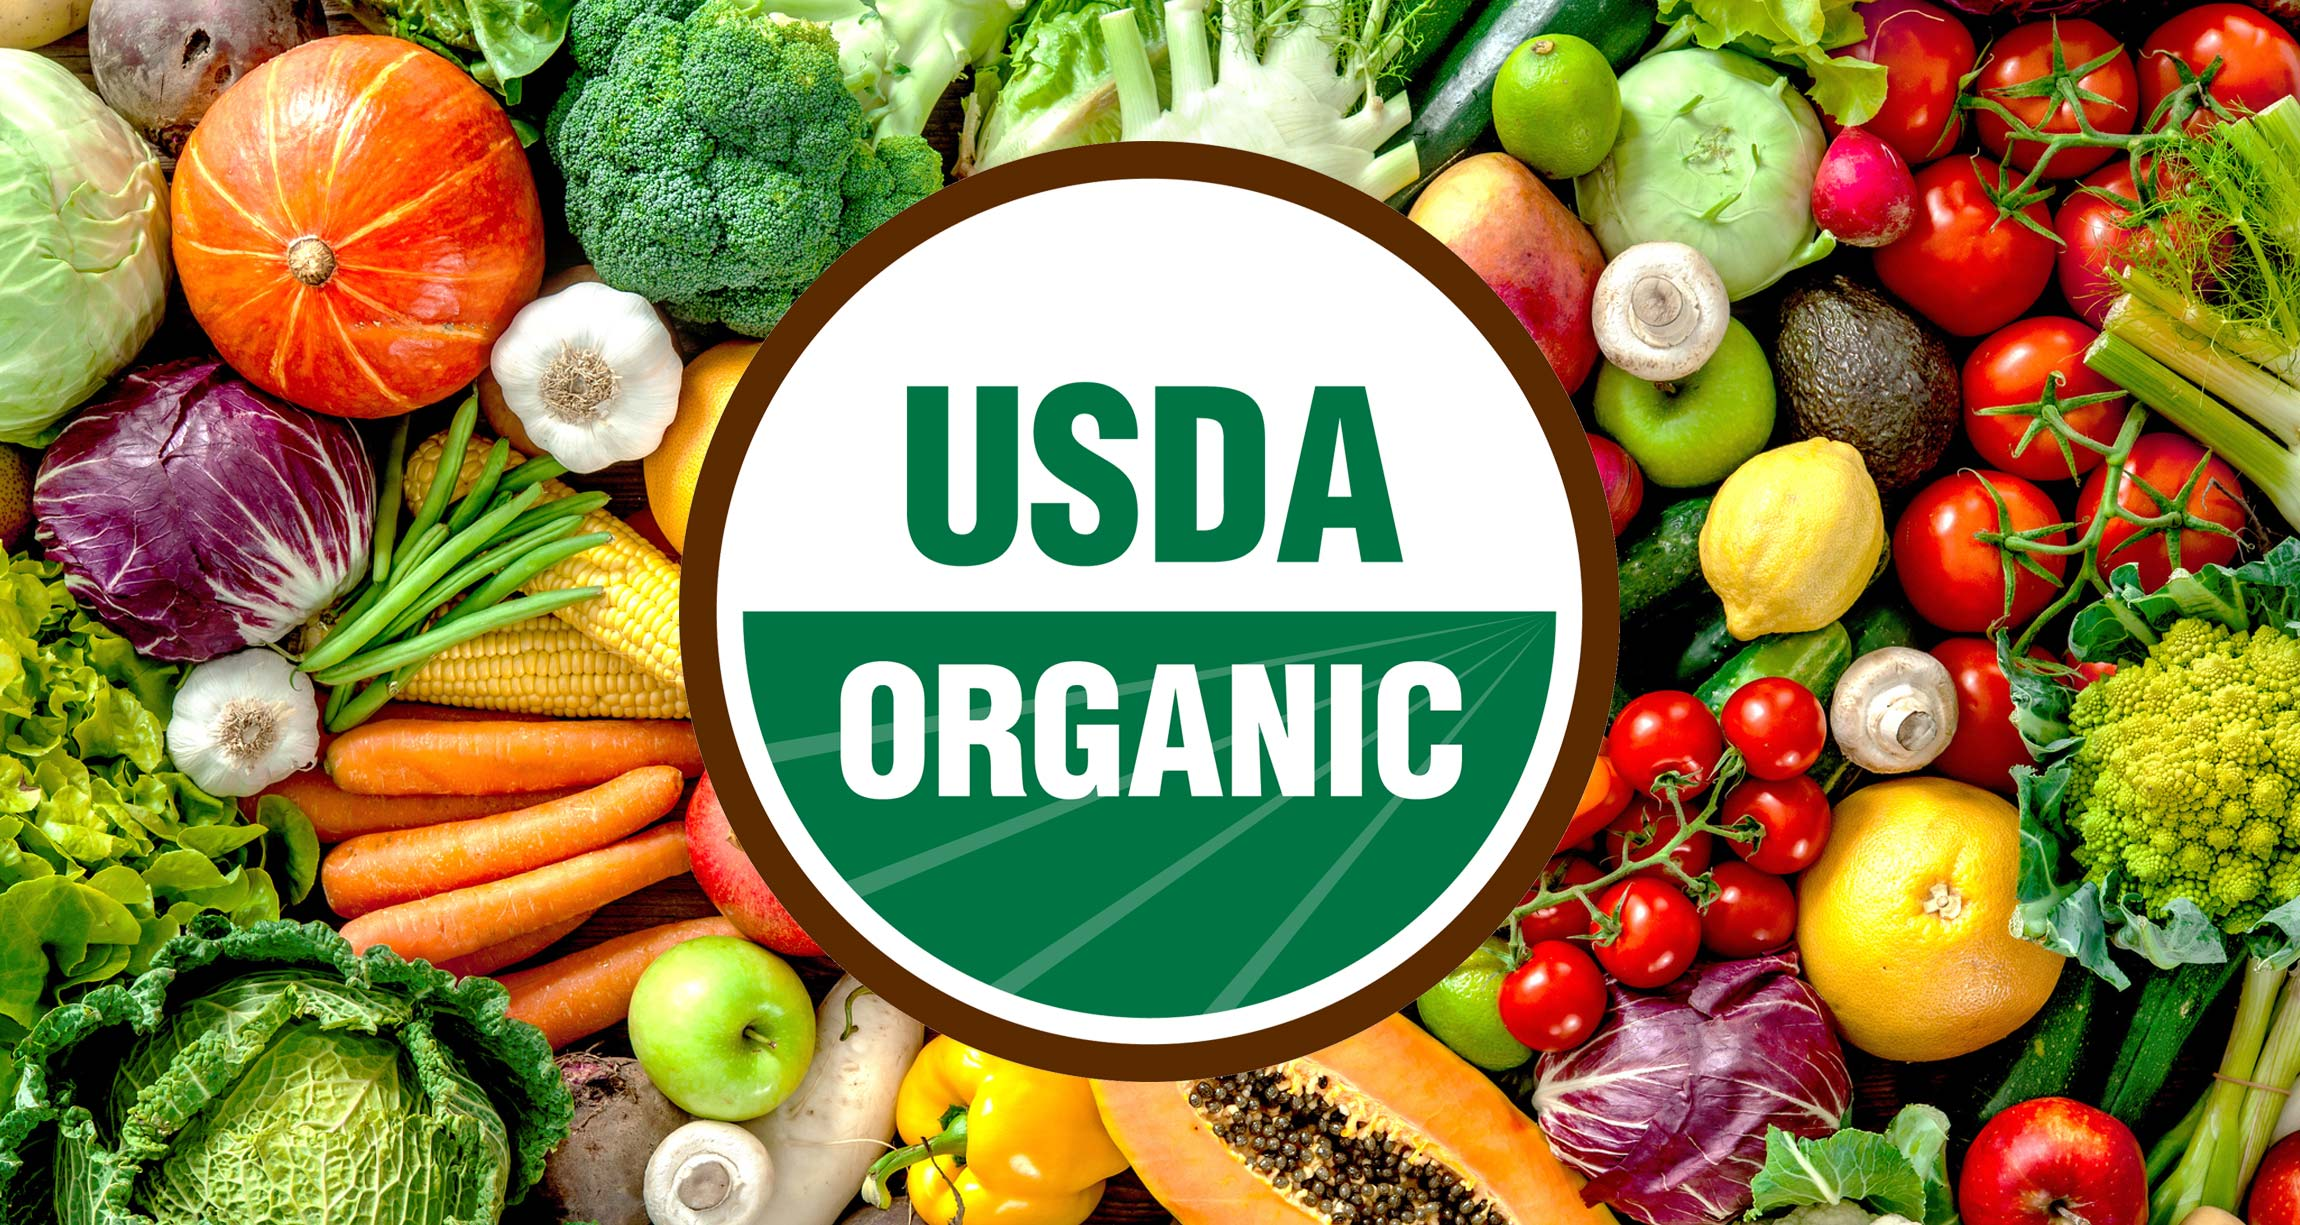 USDA organic logo on top of variety of fruits and vegetables